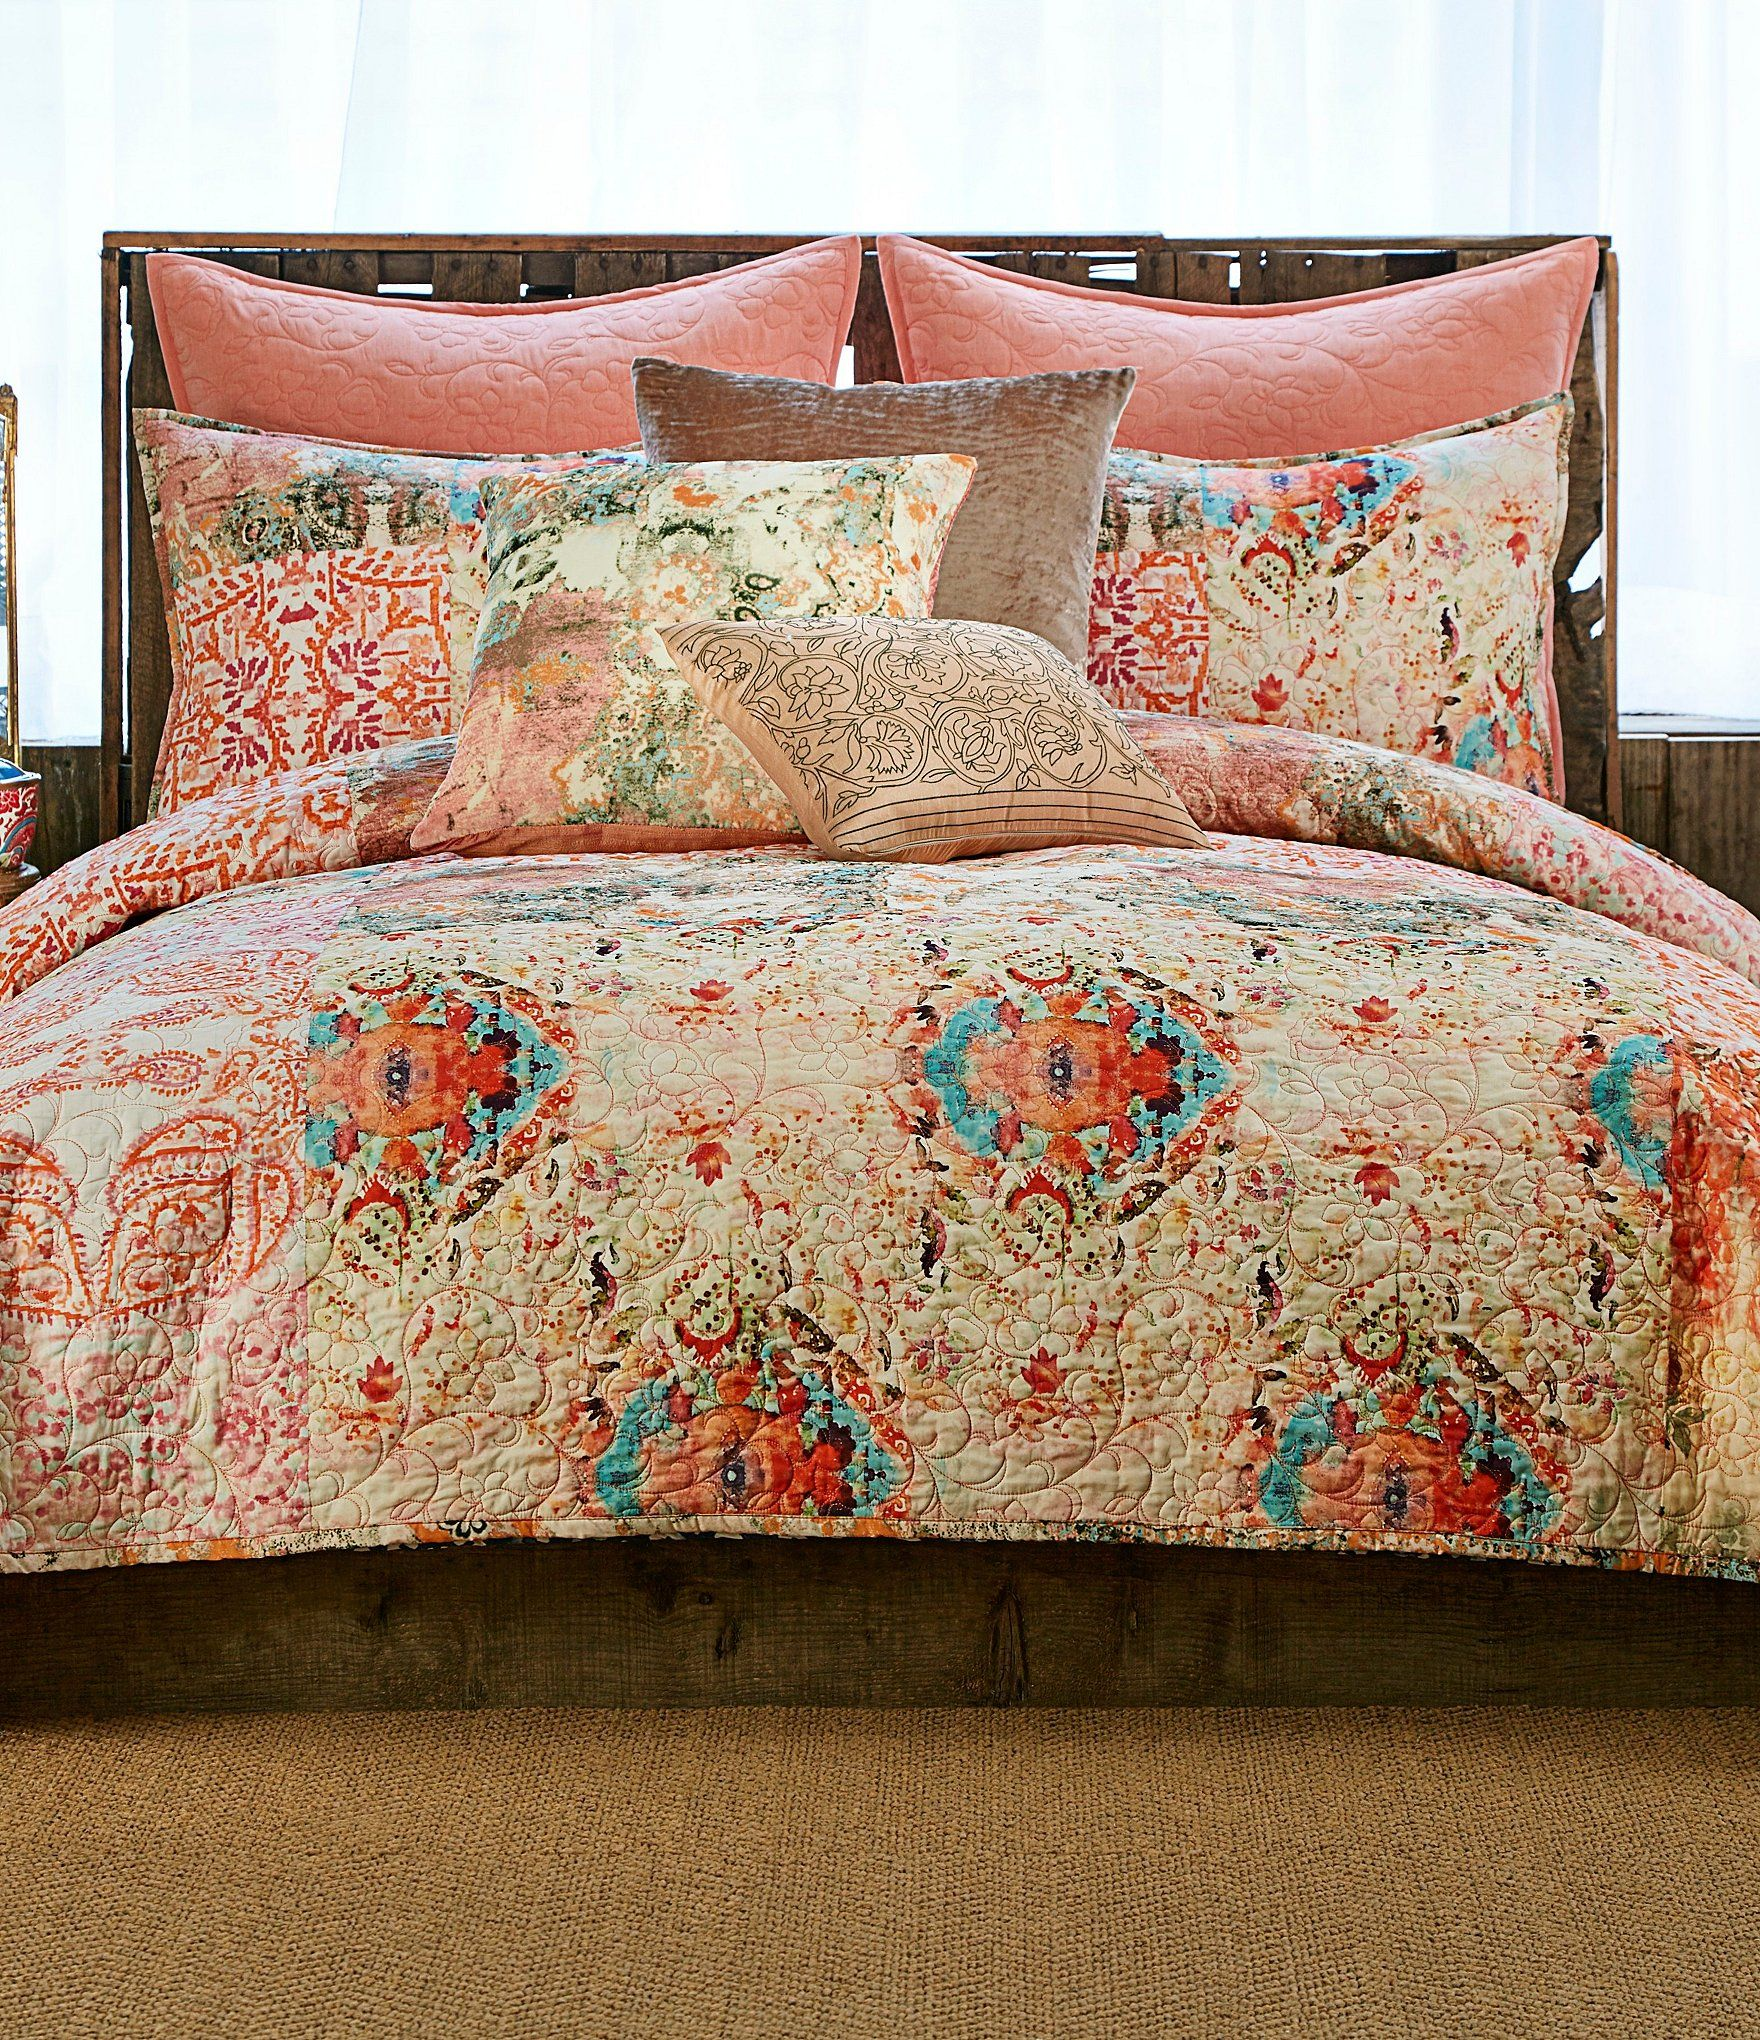 Poetic Wanderlust by Tracy Porter Wish Cotton Voile Quilt ... : dillards quilts - Adamdwight.com